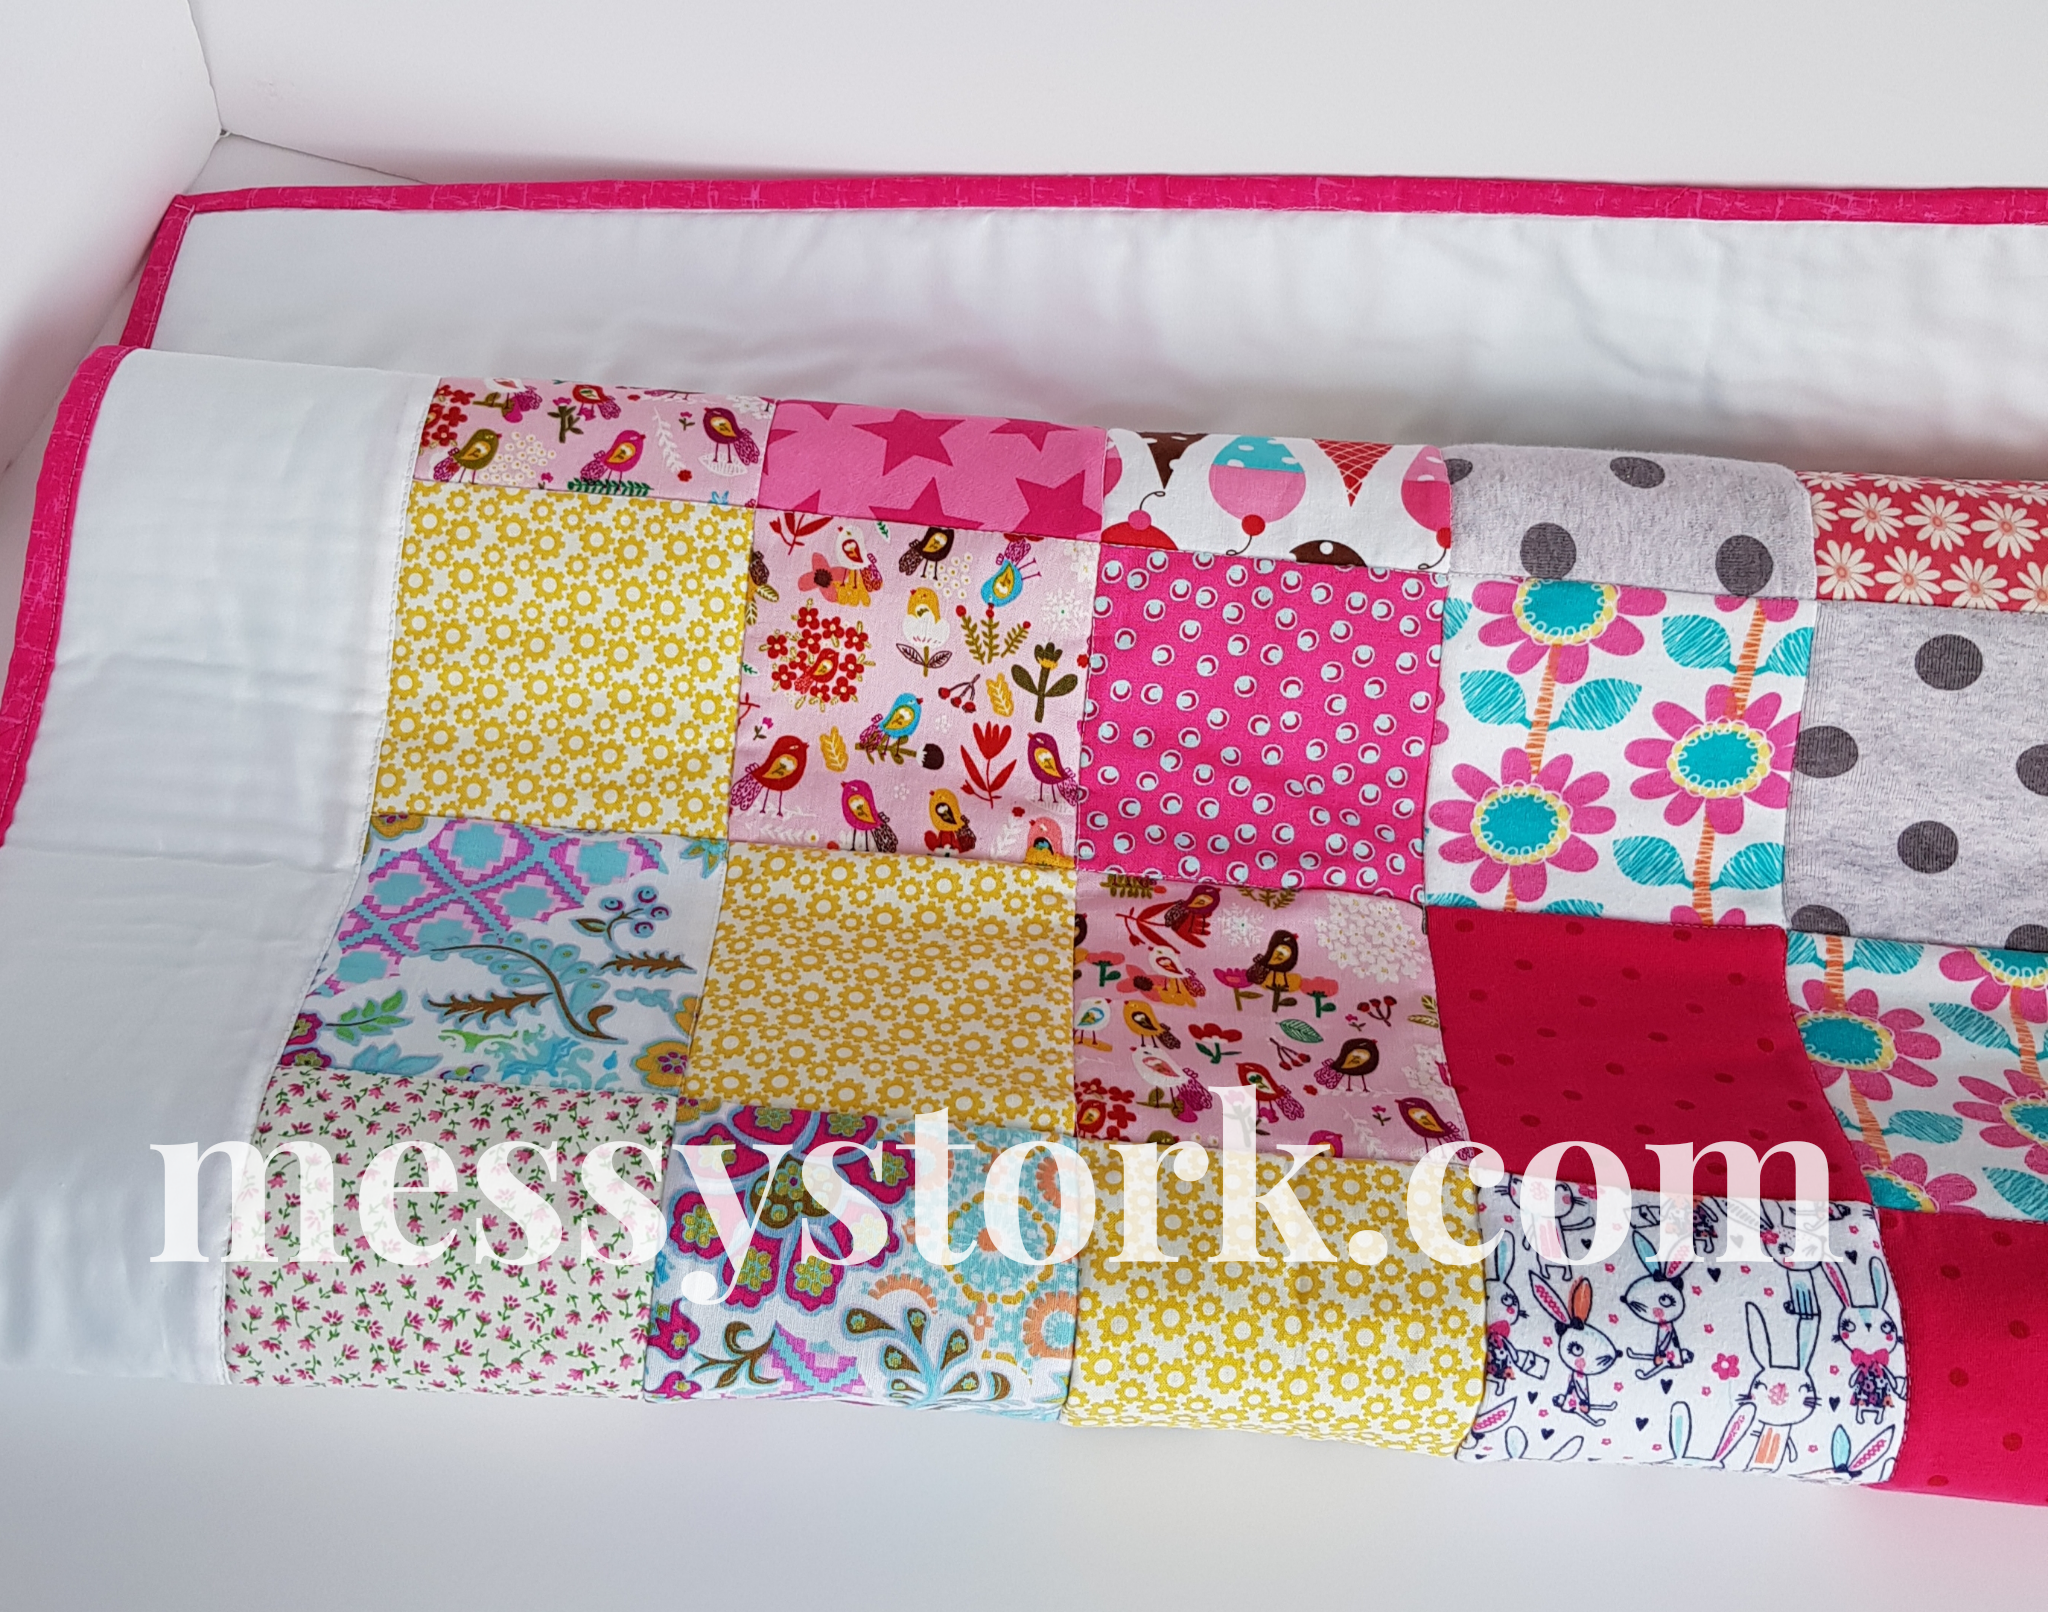 Memory Keepsake Cot Bed blanket from your clothing